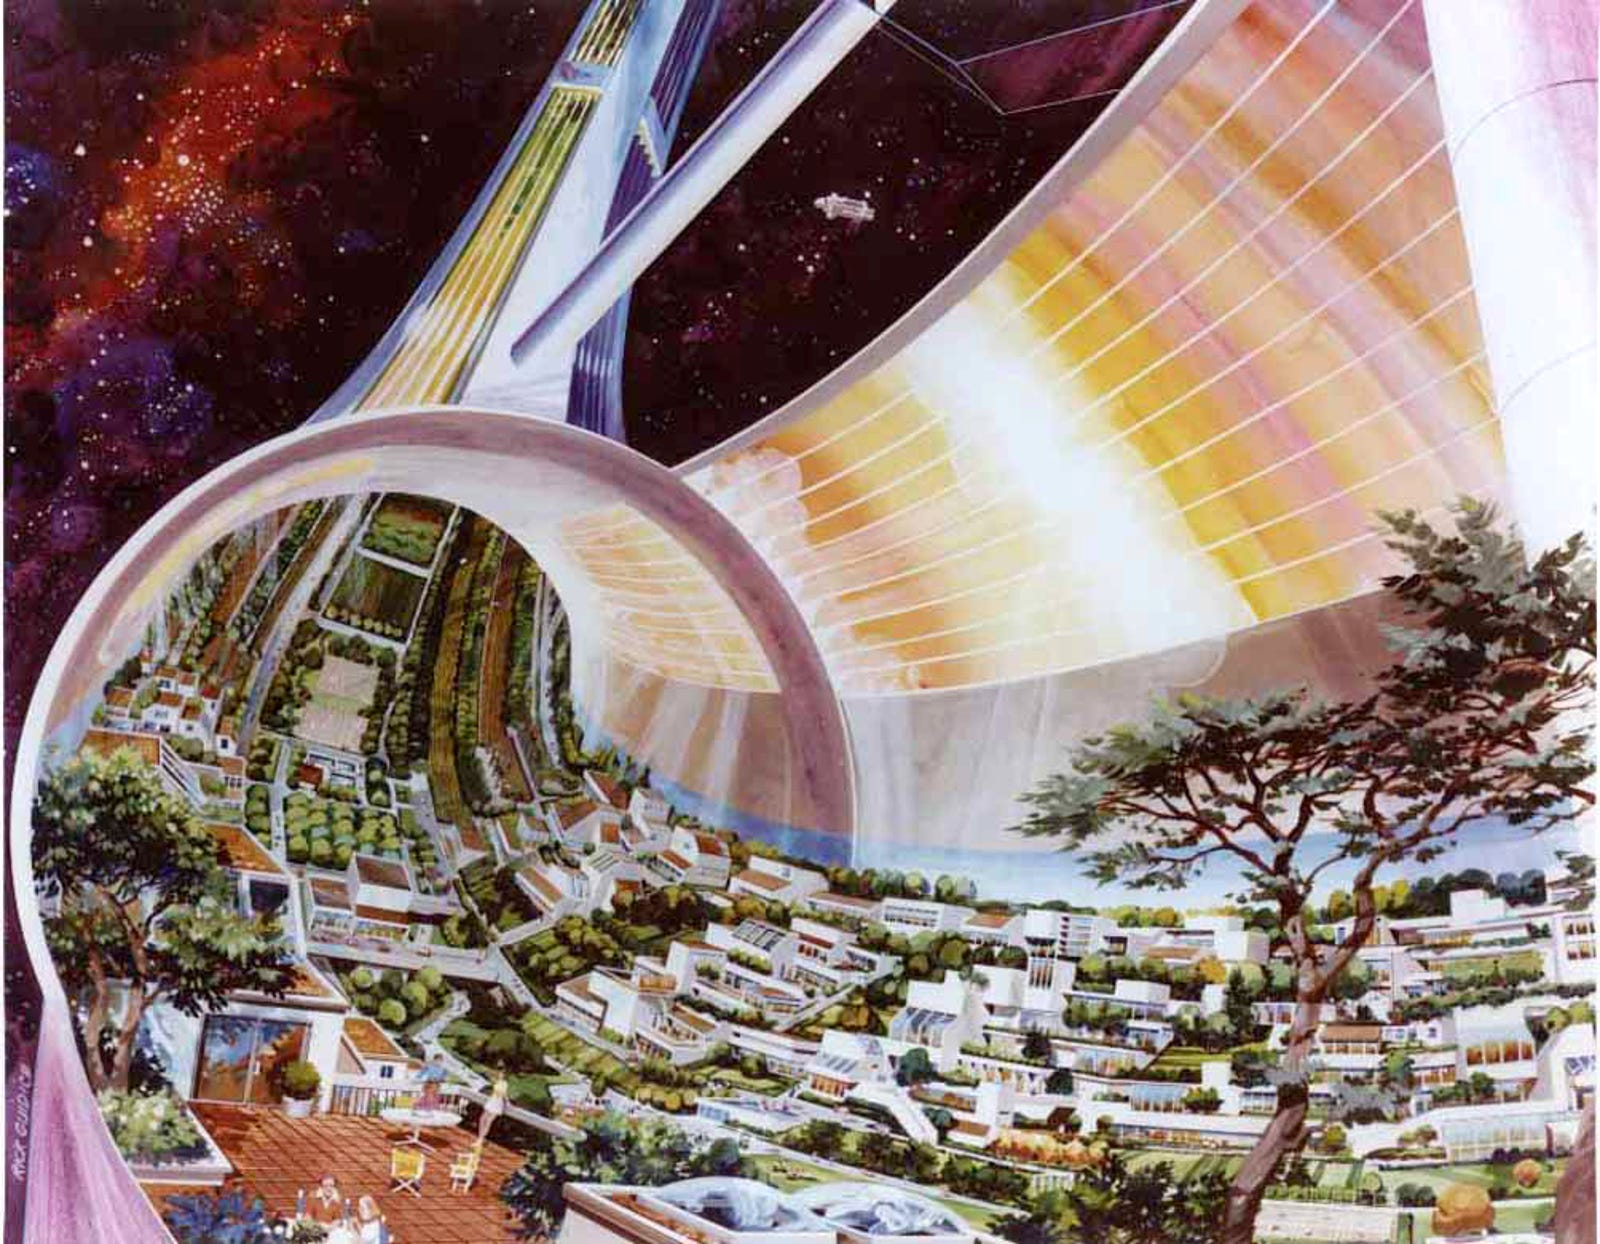 A futuristic space colony, as imagined by NASA artist Rick Guidice in the 1970s